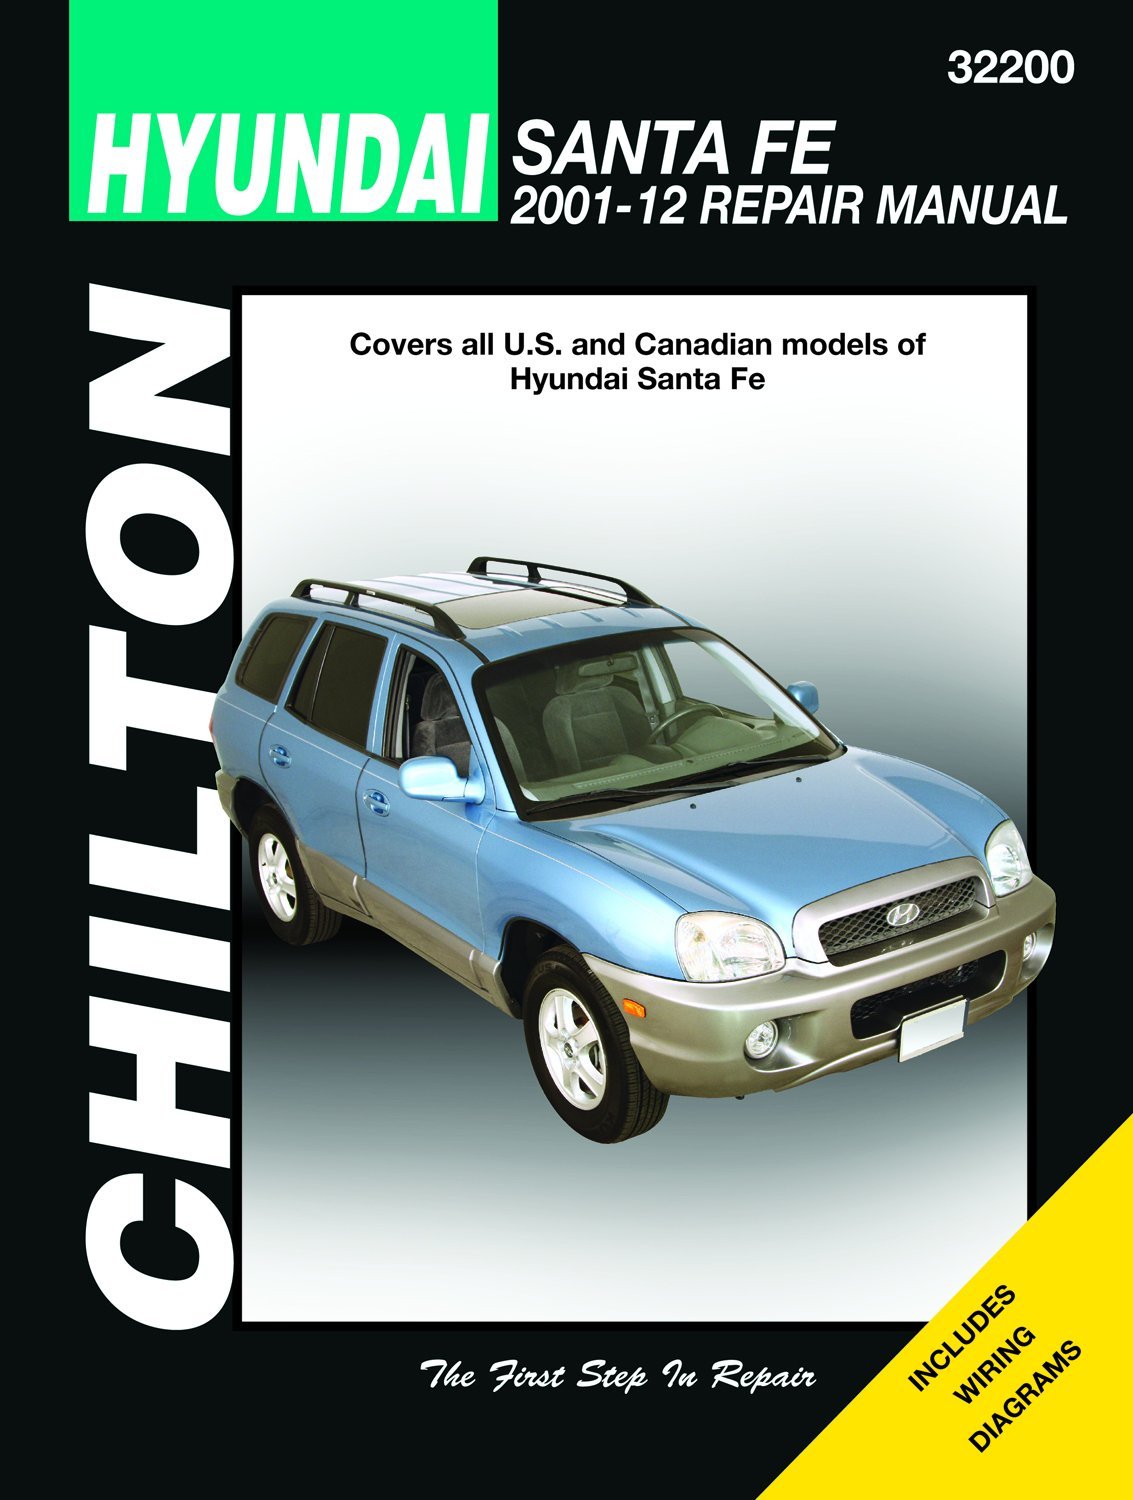 hyundai santa fe repair manual 2001-2012 paperback – 2015